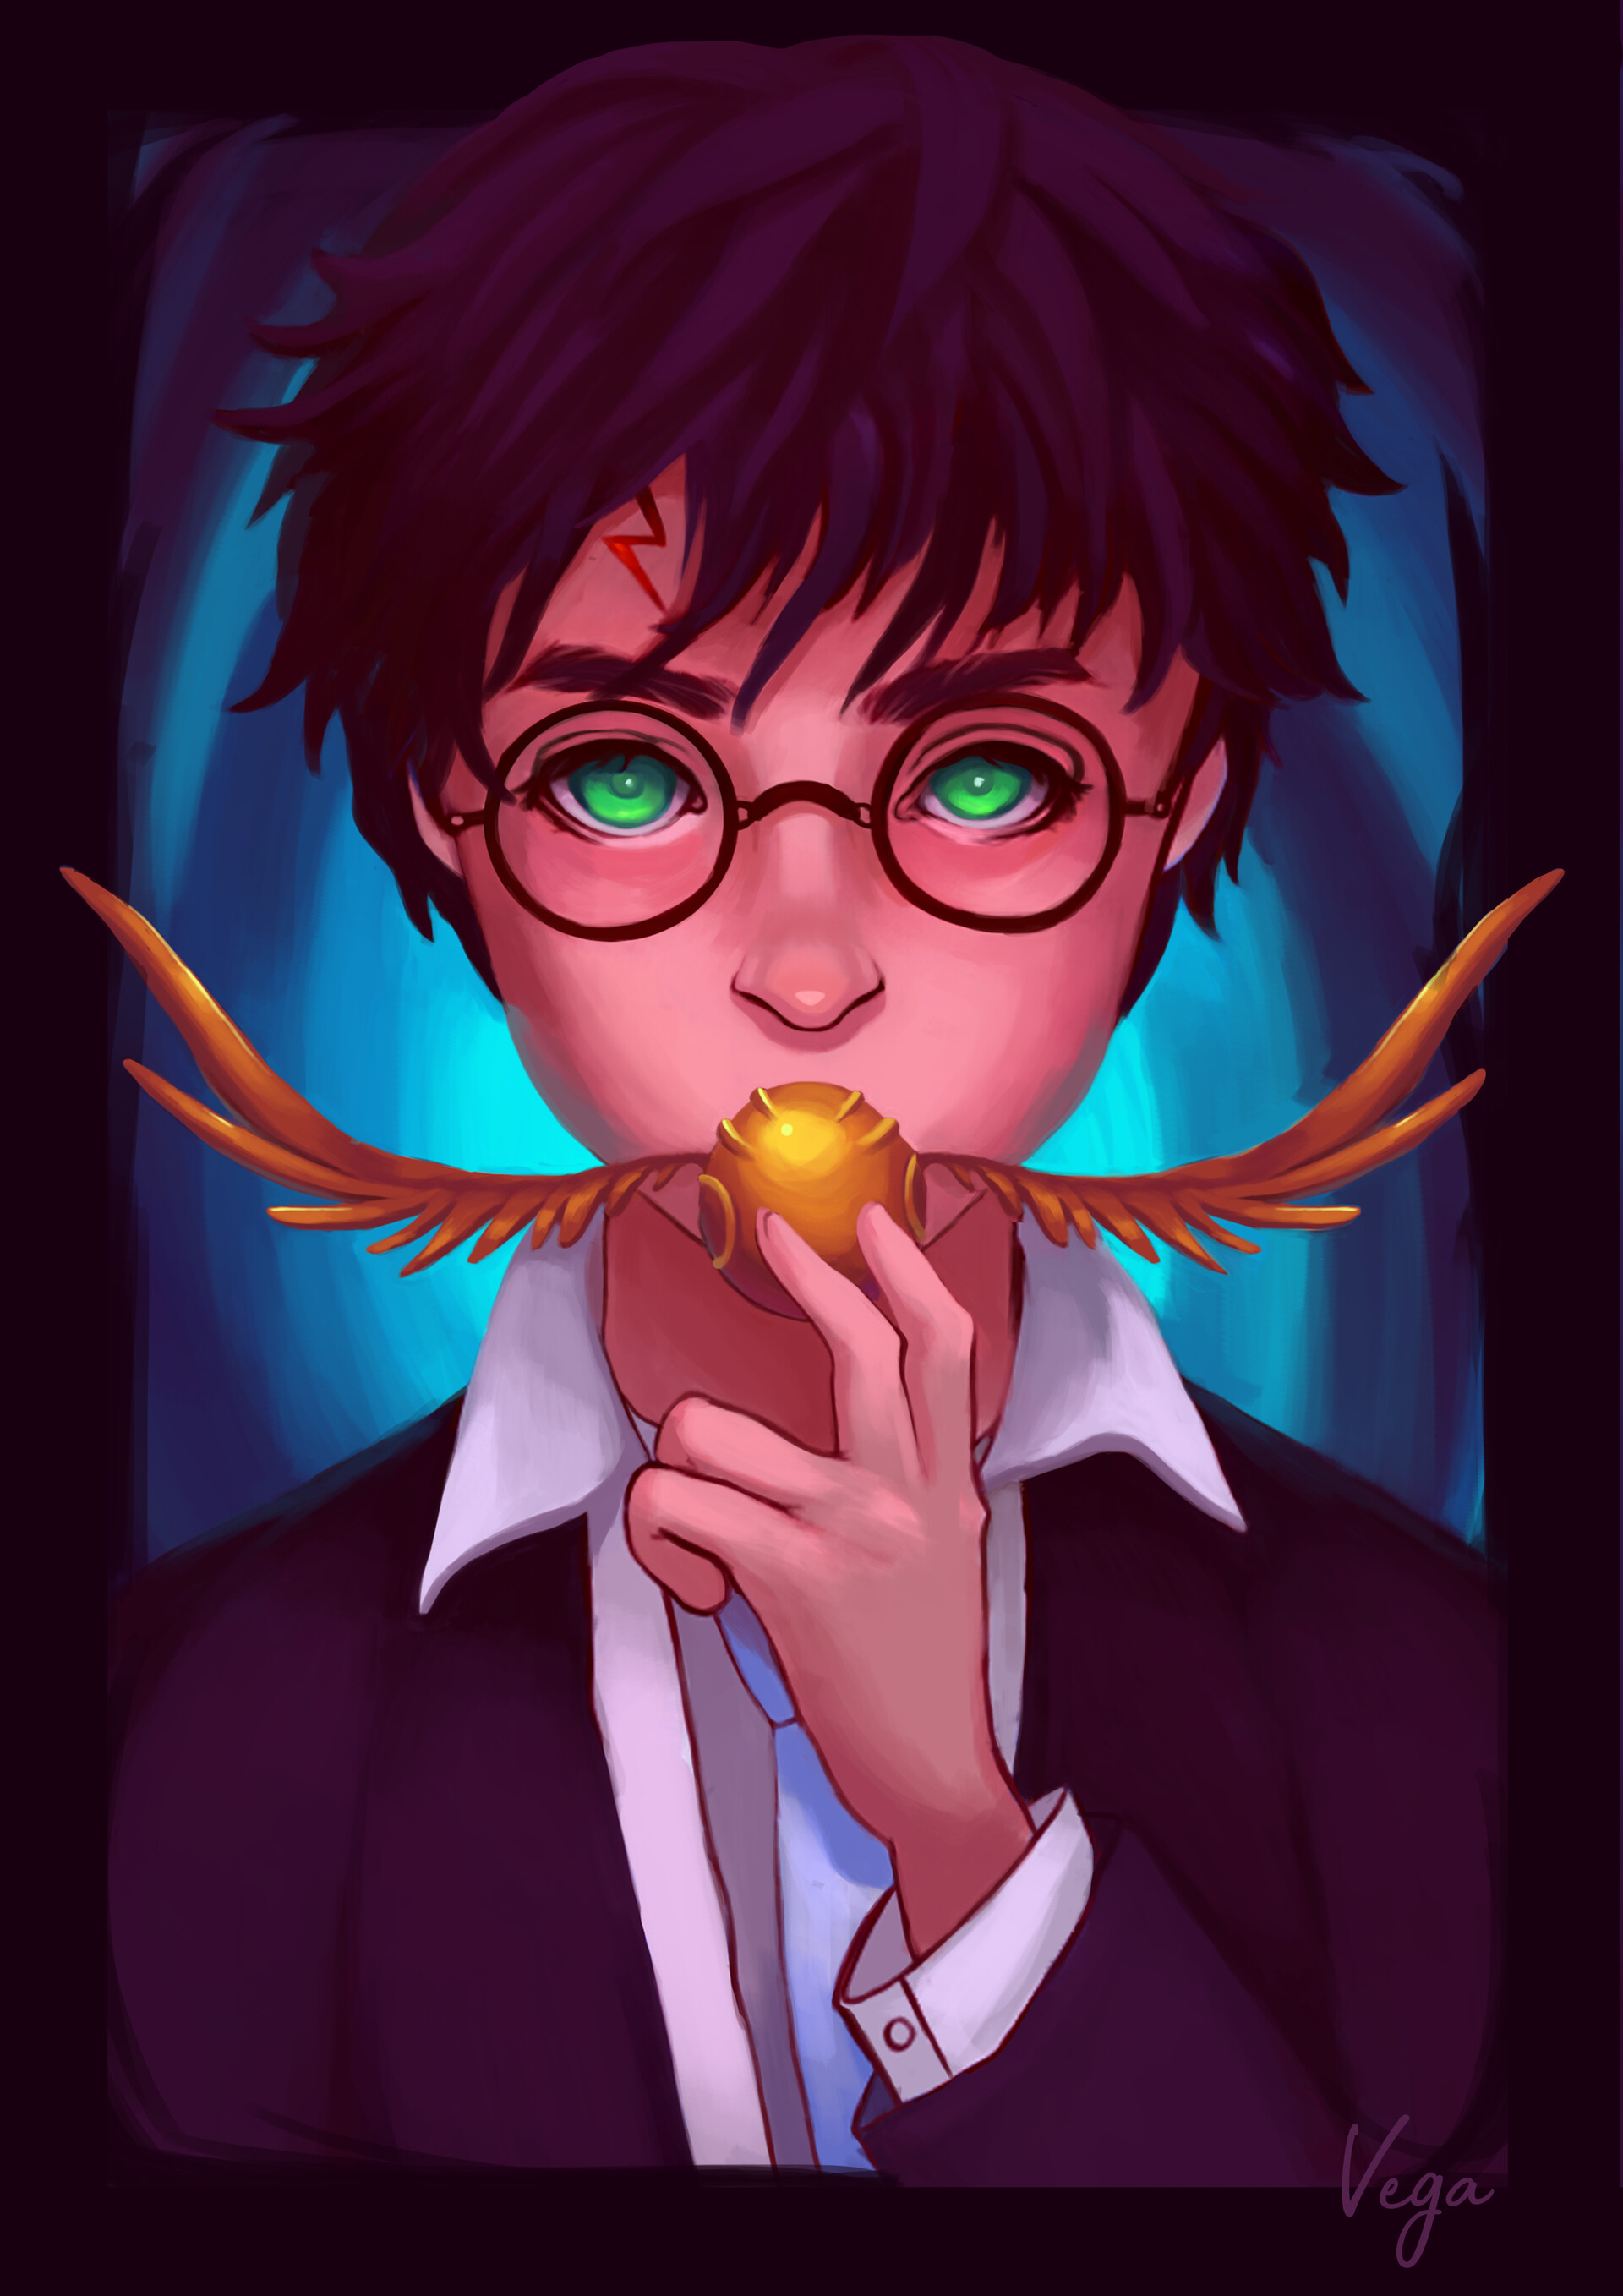 ArtStation - Harry Potter fanart, Lara M  Vega